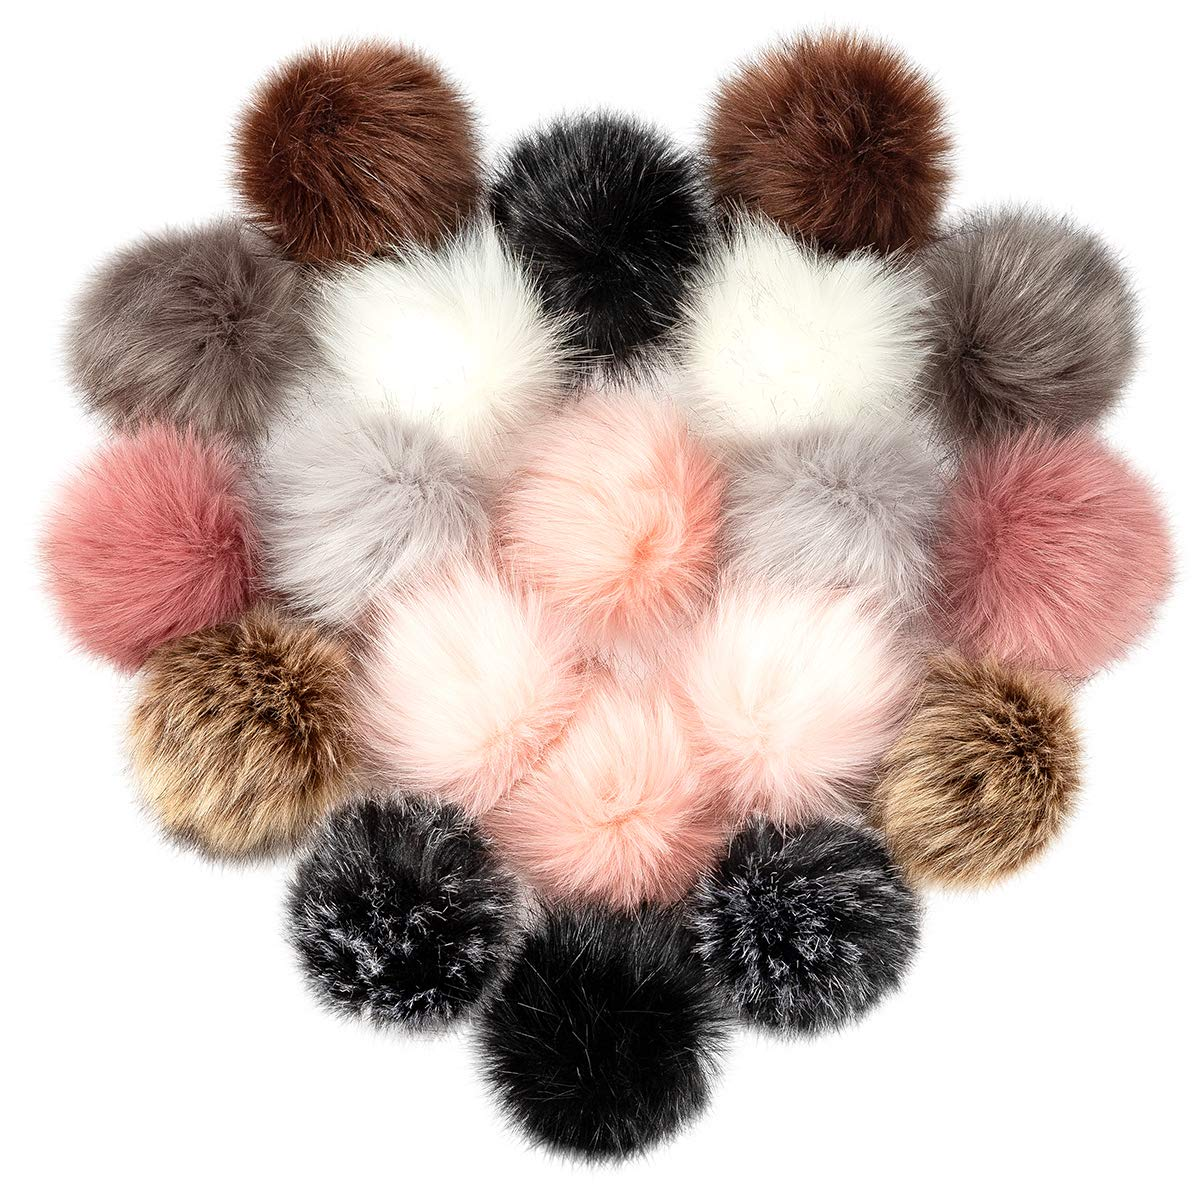 Cosweet 20pcs 4 Inch DIY Faux Fox Fur Fluffy Pompom Ball- Faux Fox Fur Pom Pom Balls with Elastic Loop Removable Knitting Hat Accessories for Hats Shoes Scarves Bags Keychains (10 Color-Dark) by Cosweet